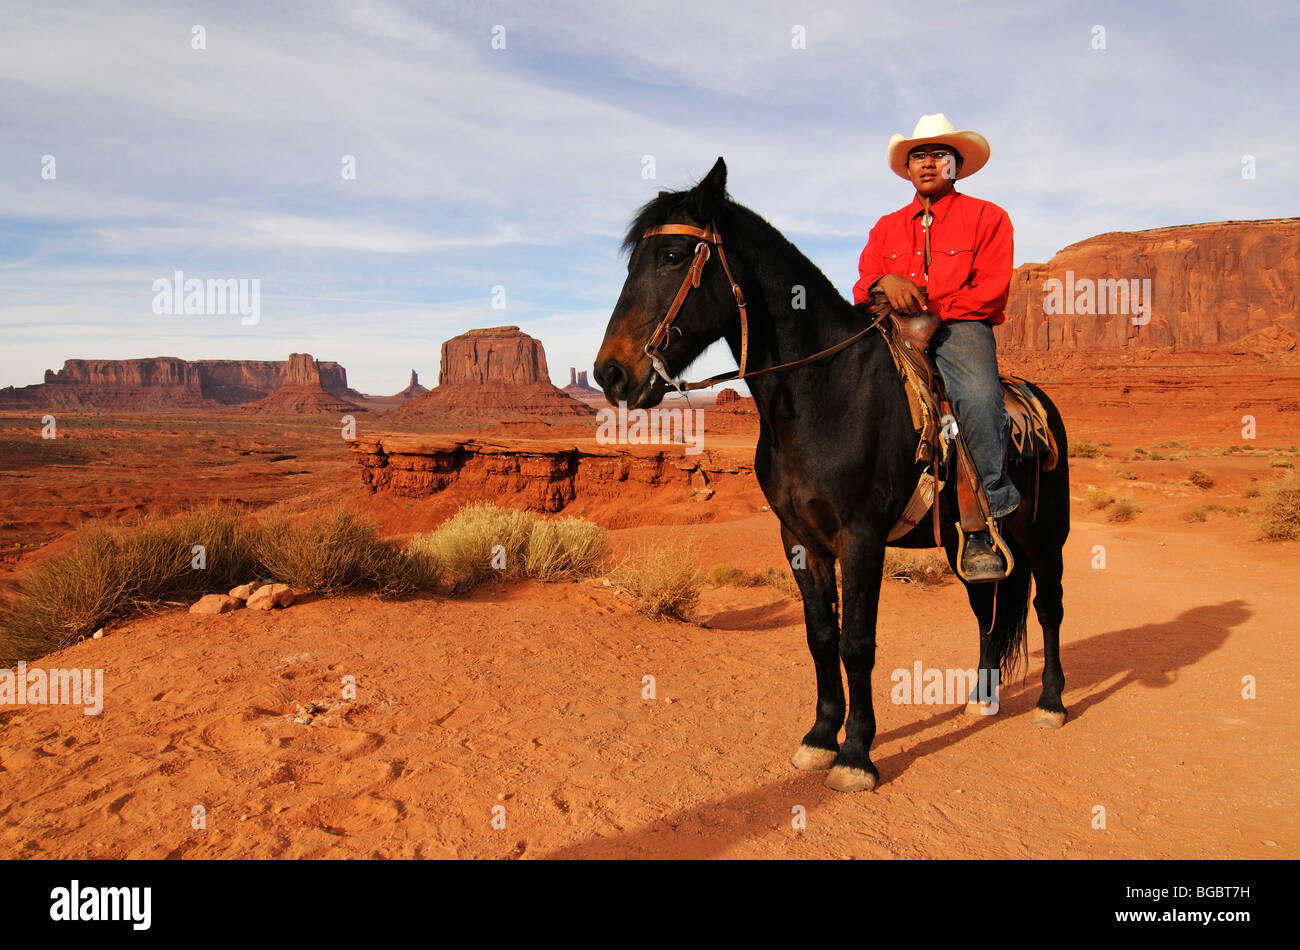 Navajo, Native American on horseback, Monument Valley, Navajo Tribal Lands, Utah - Stock Image